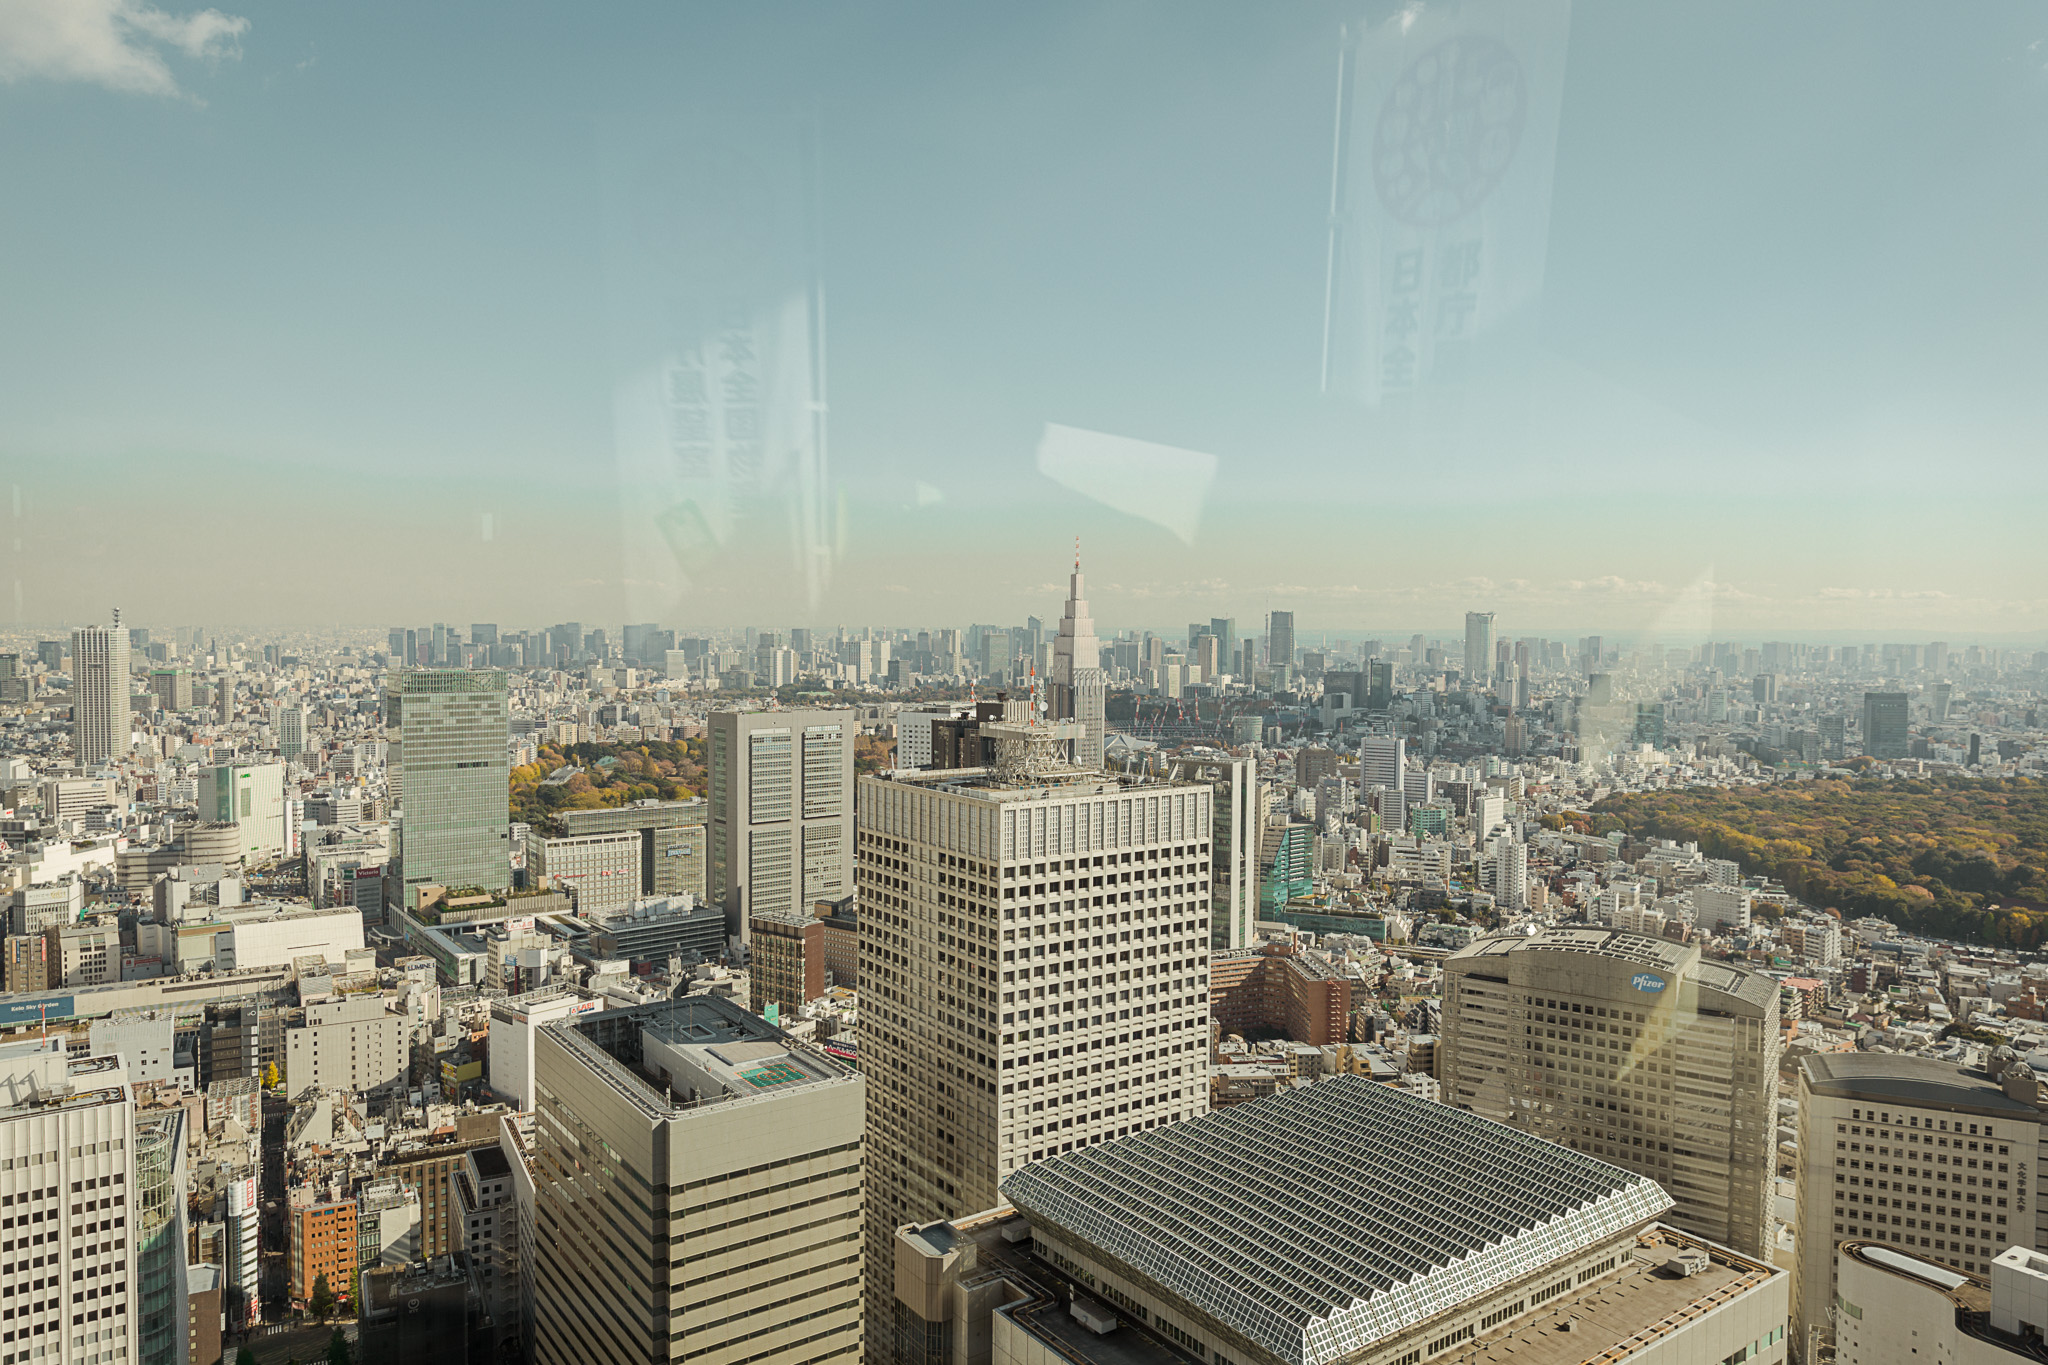 Tokyo Japan. View from Tokyo Metropolitan Government Building